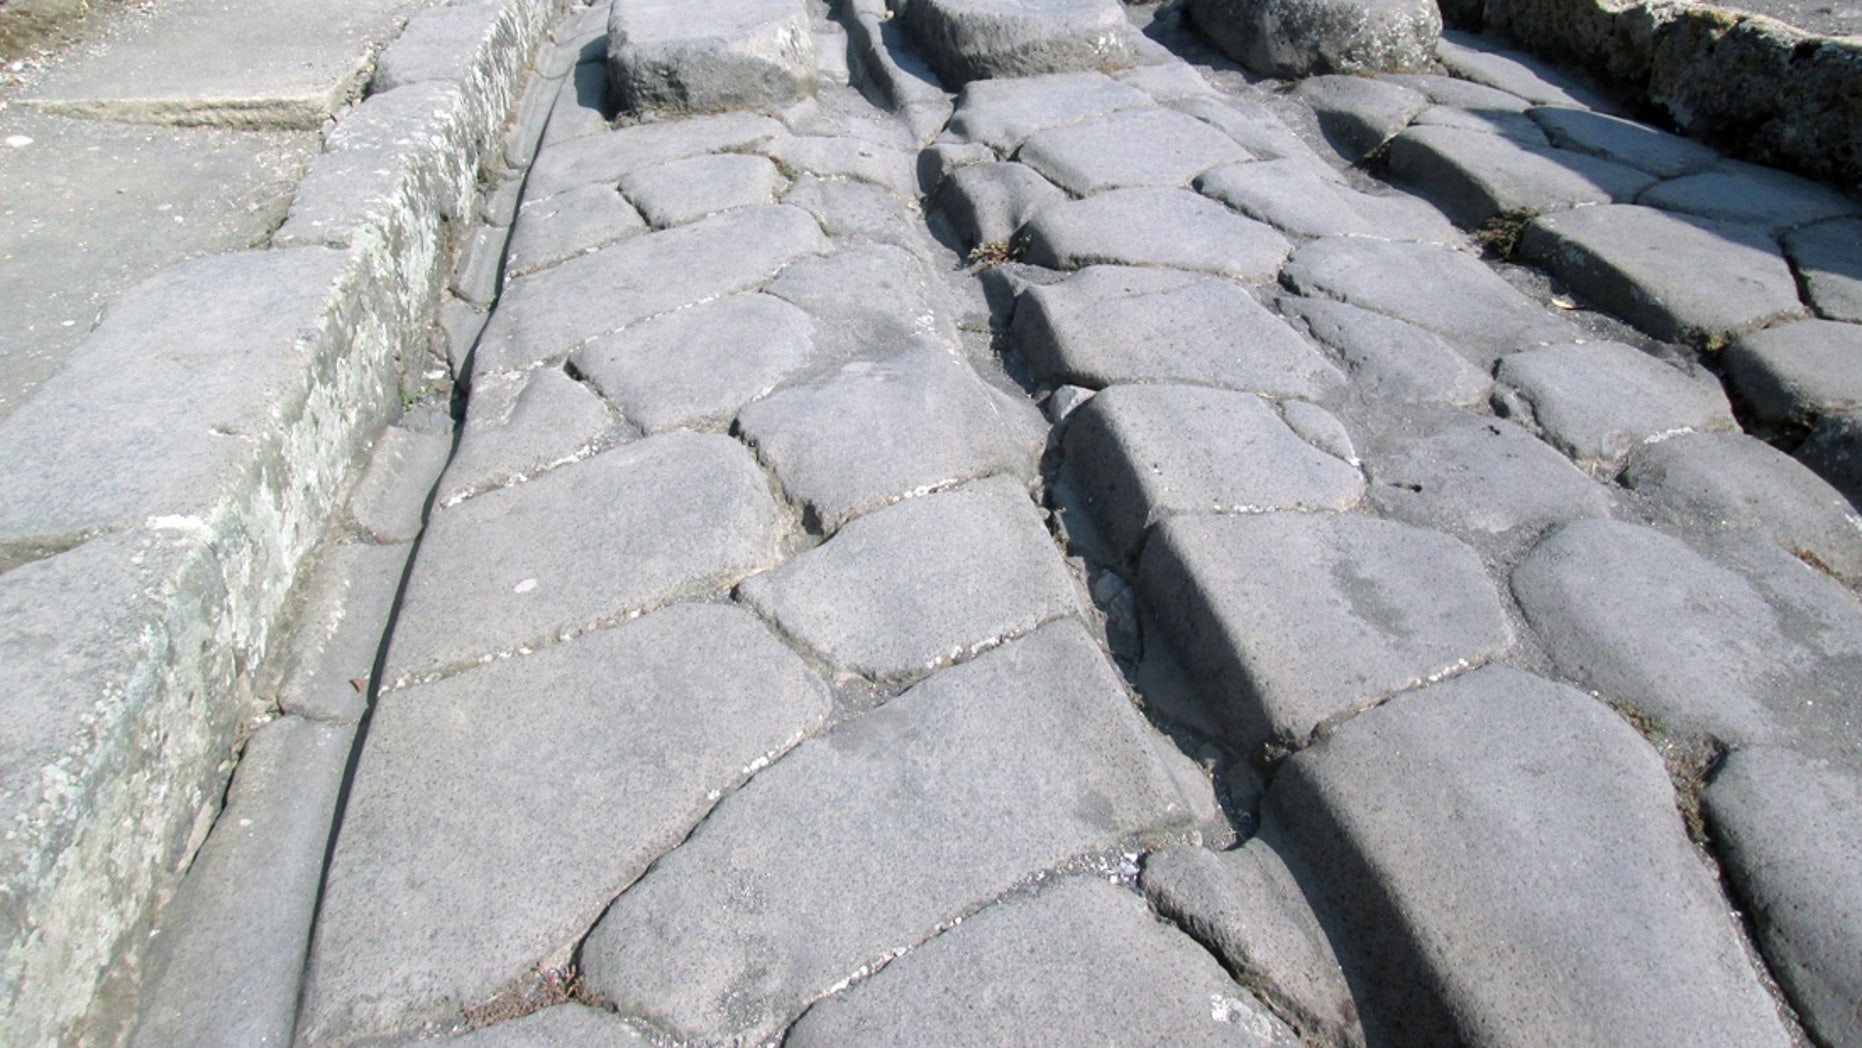 The passage of carts over decades could cause ruts (like the one shown here), particularly in high-traffic areas of Pompeii.